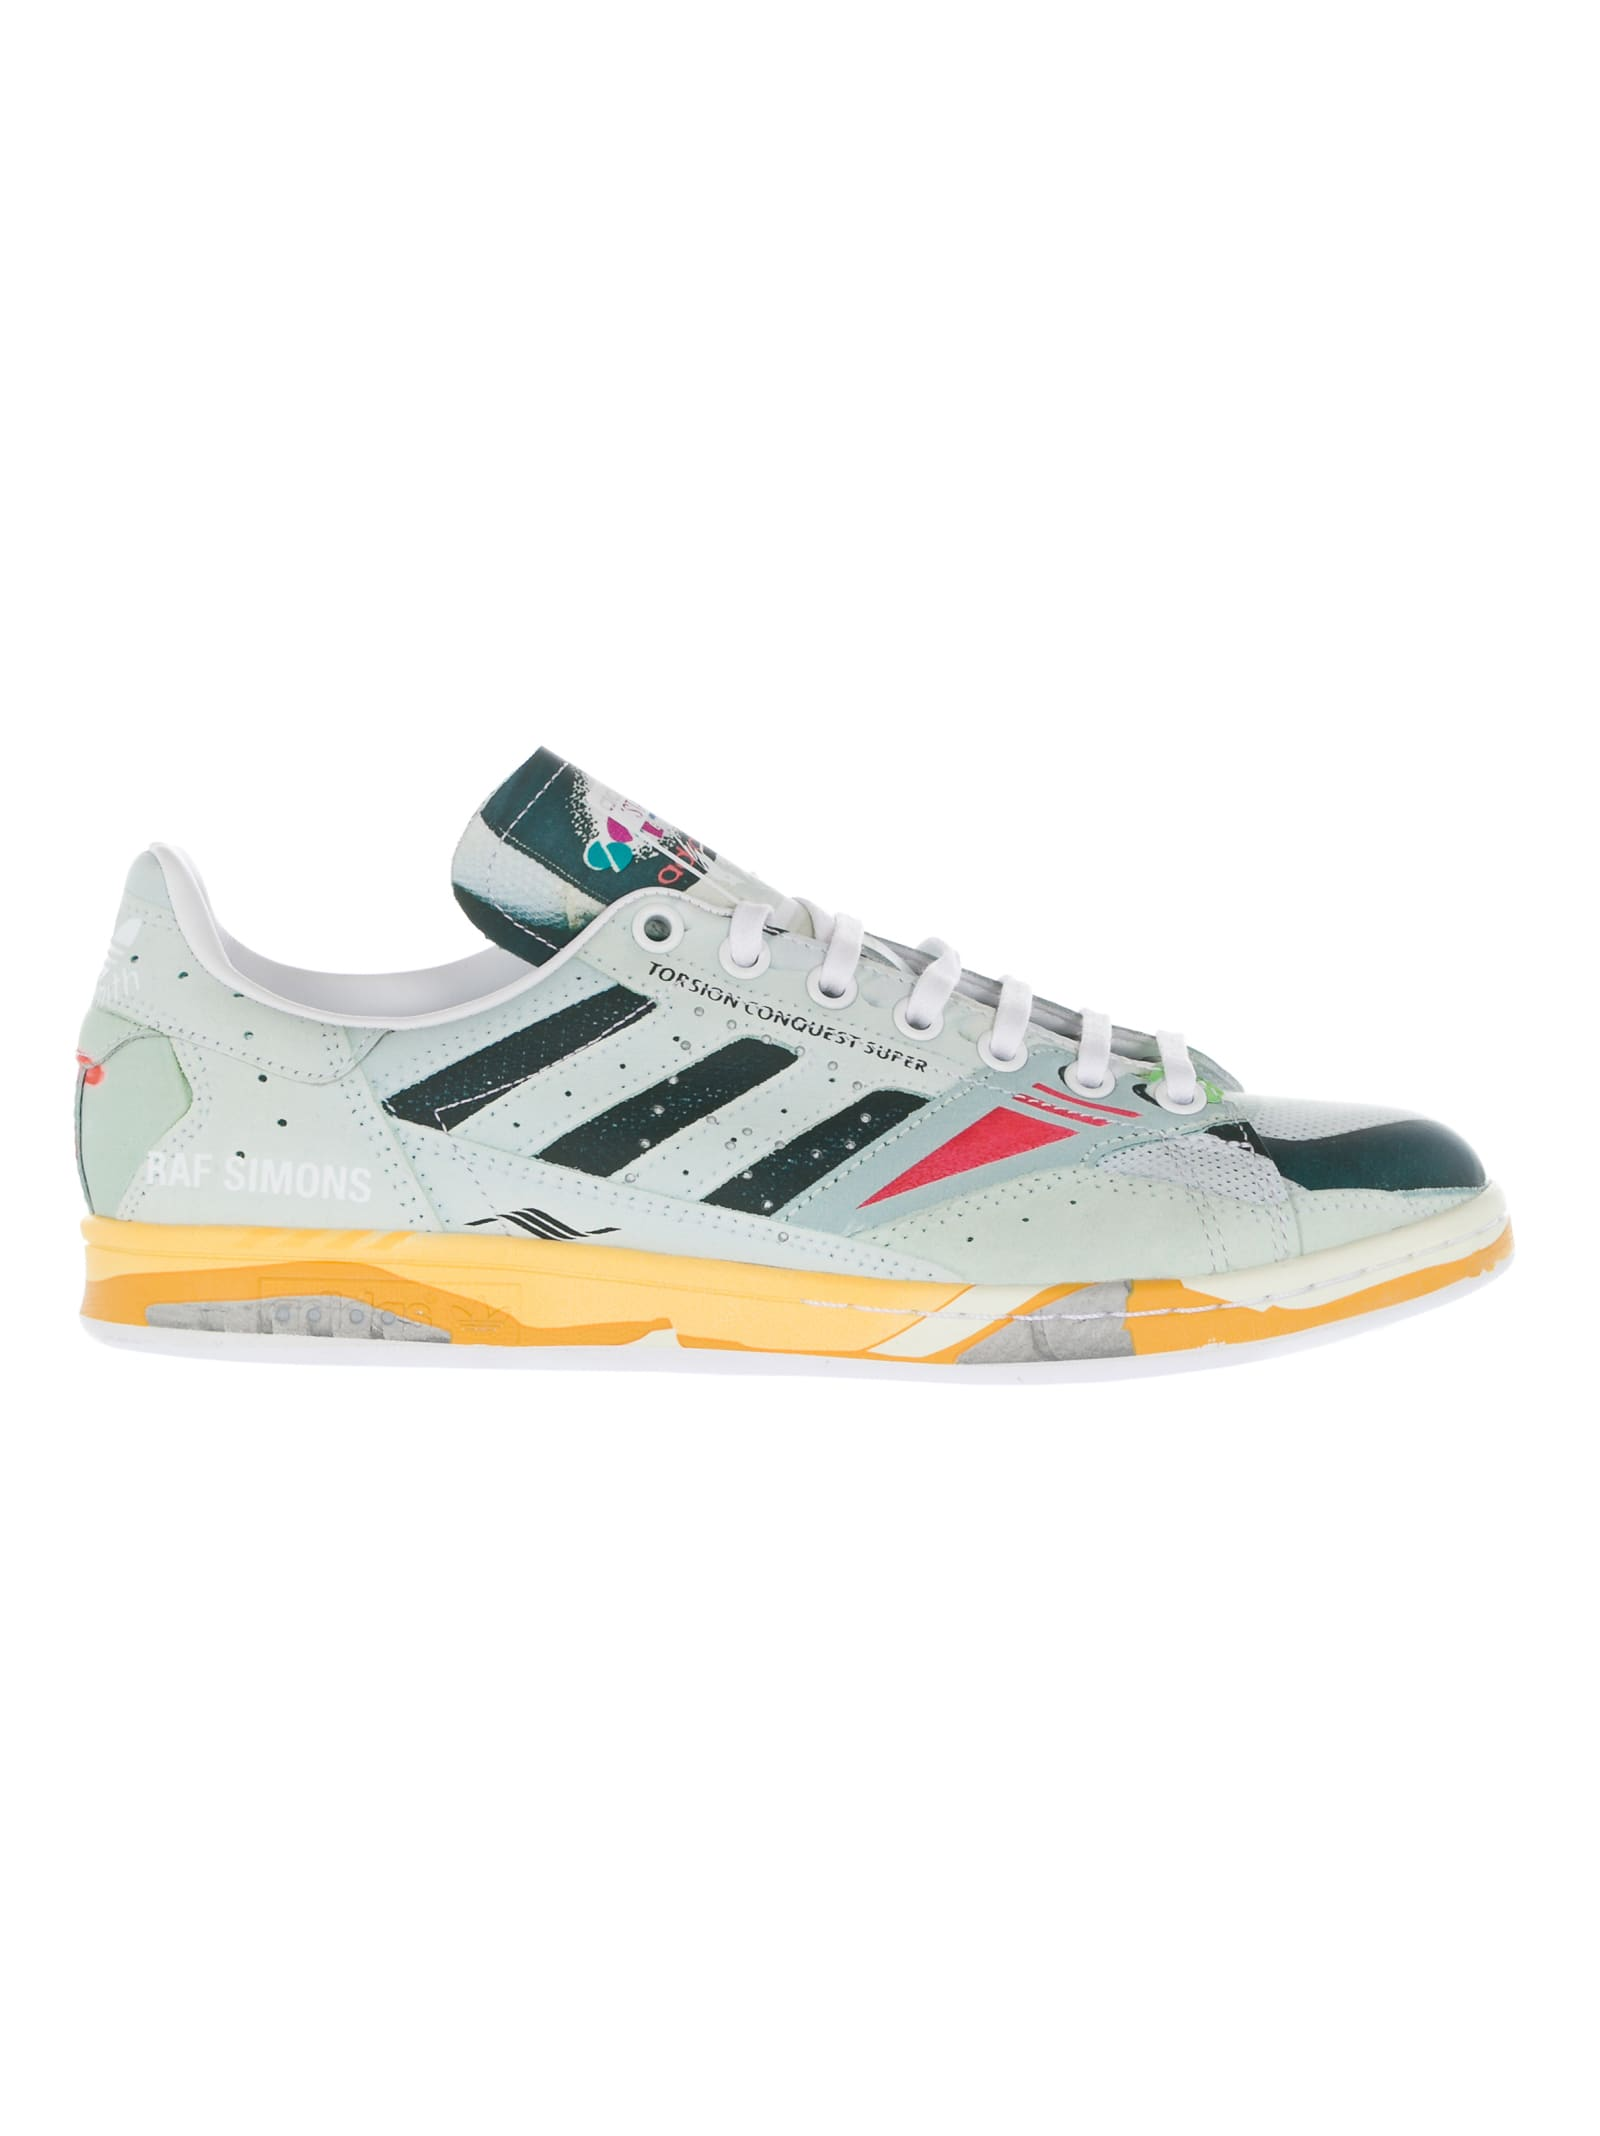 online retailer 1ed37 0dcfd Best price on the market at italist | Adidas By Raf Simons Adidas By Raf  Simons Torsion Stan Smith Sneakers